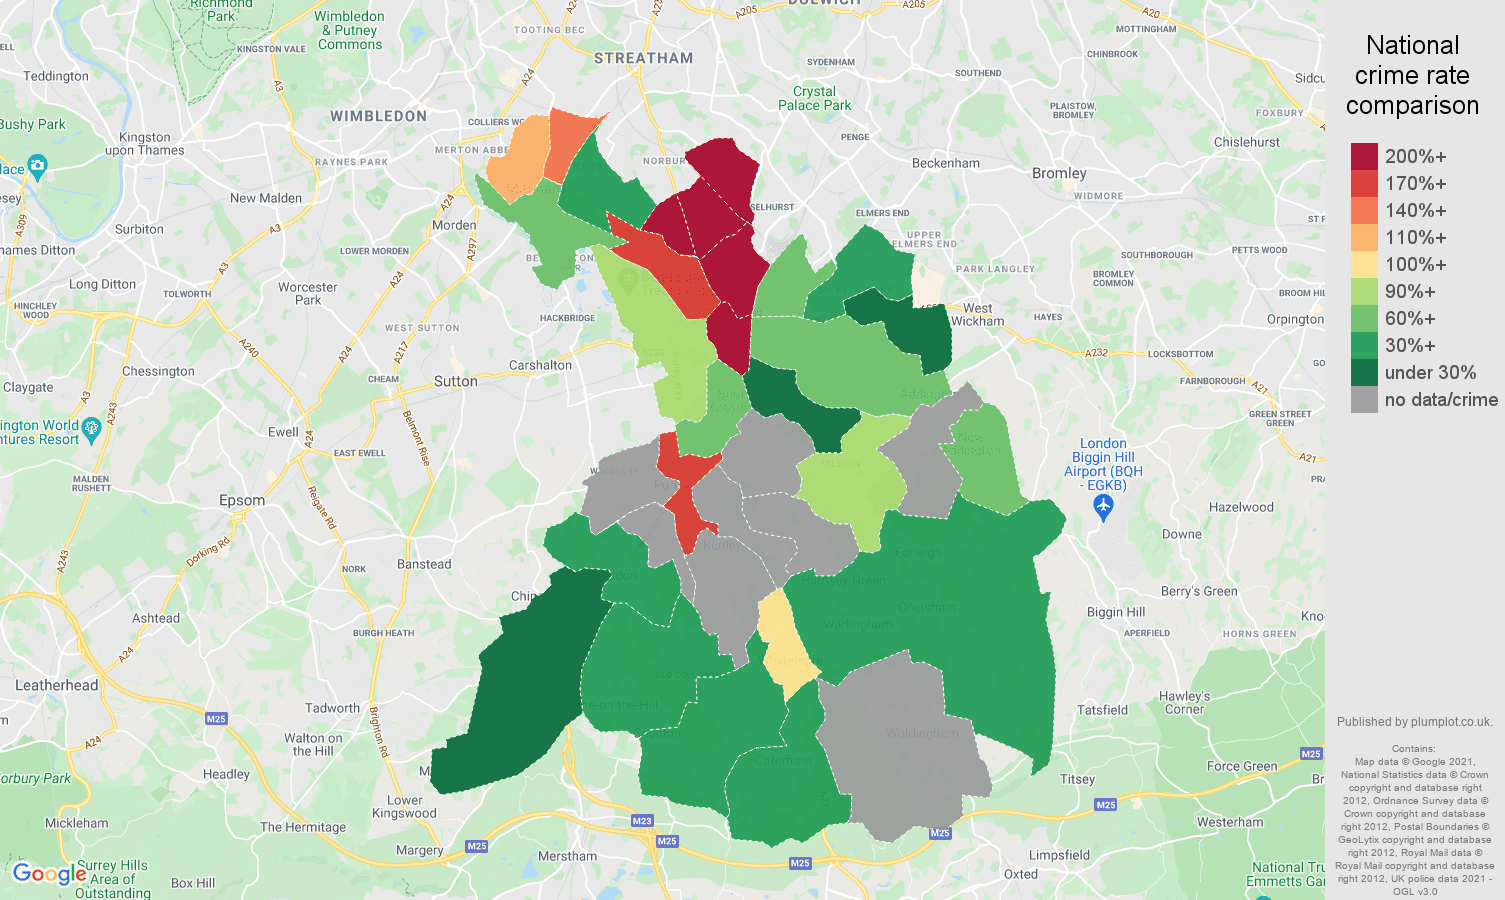 Croydon theft from the person crime rate comparison map